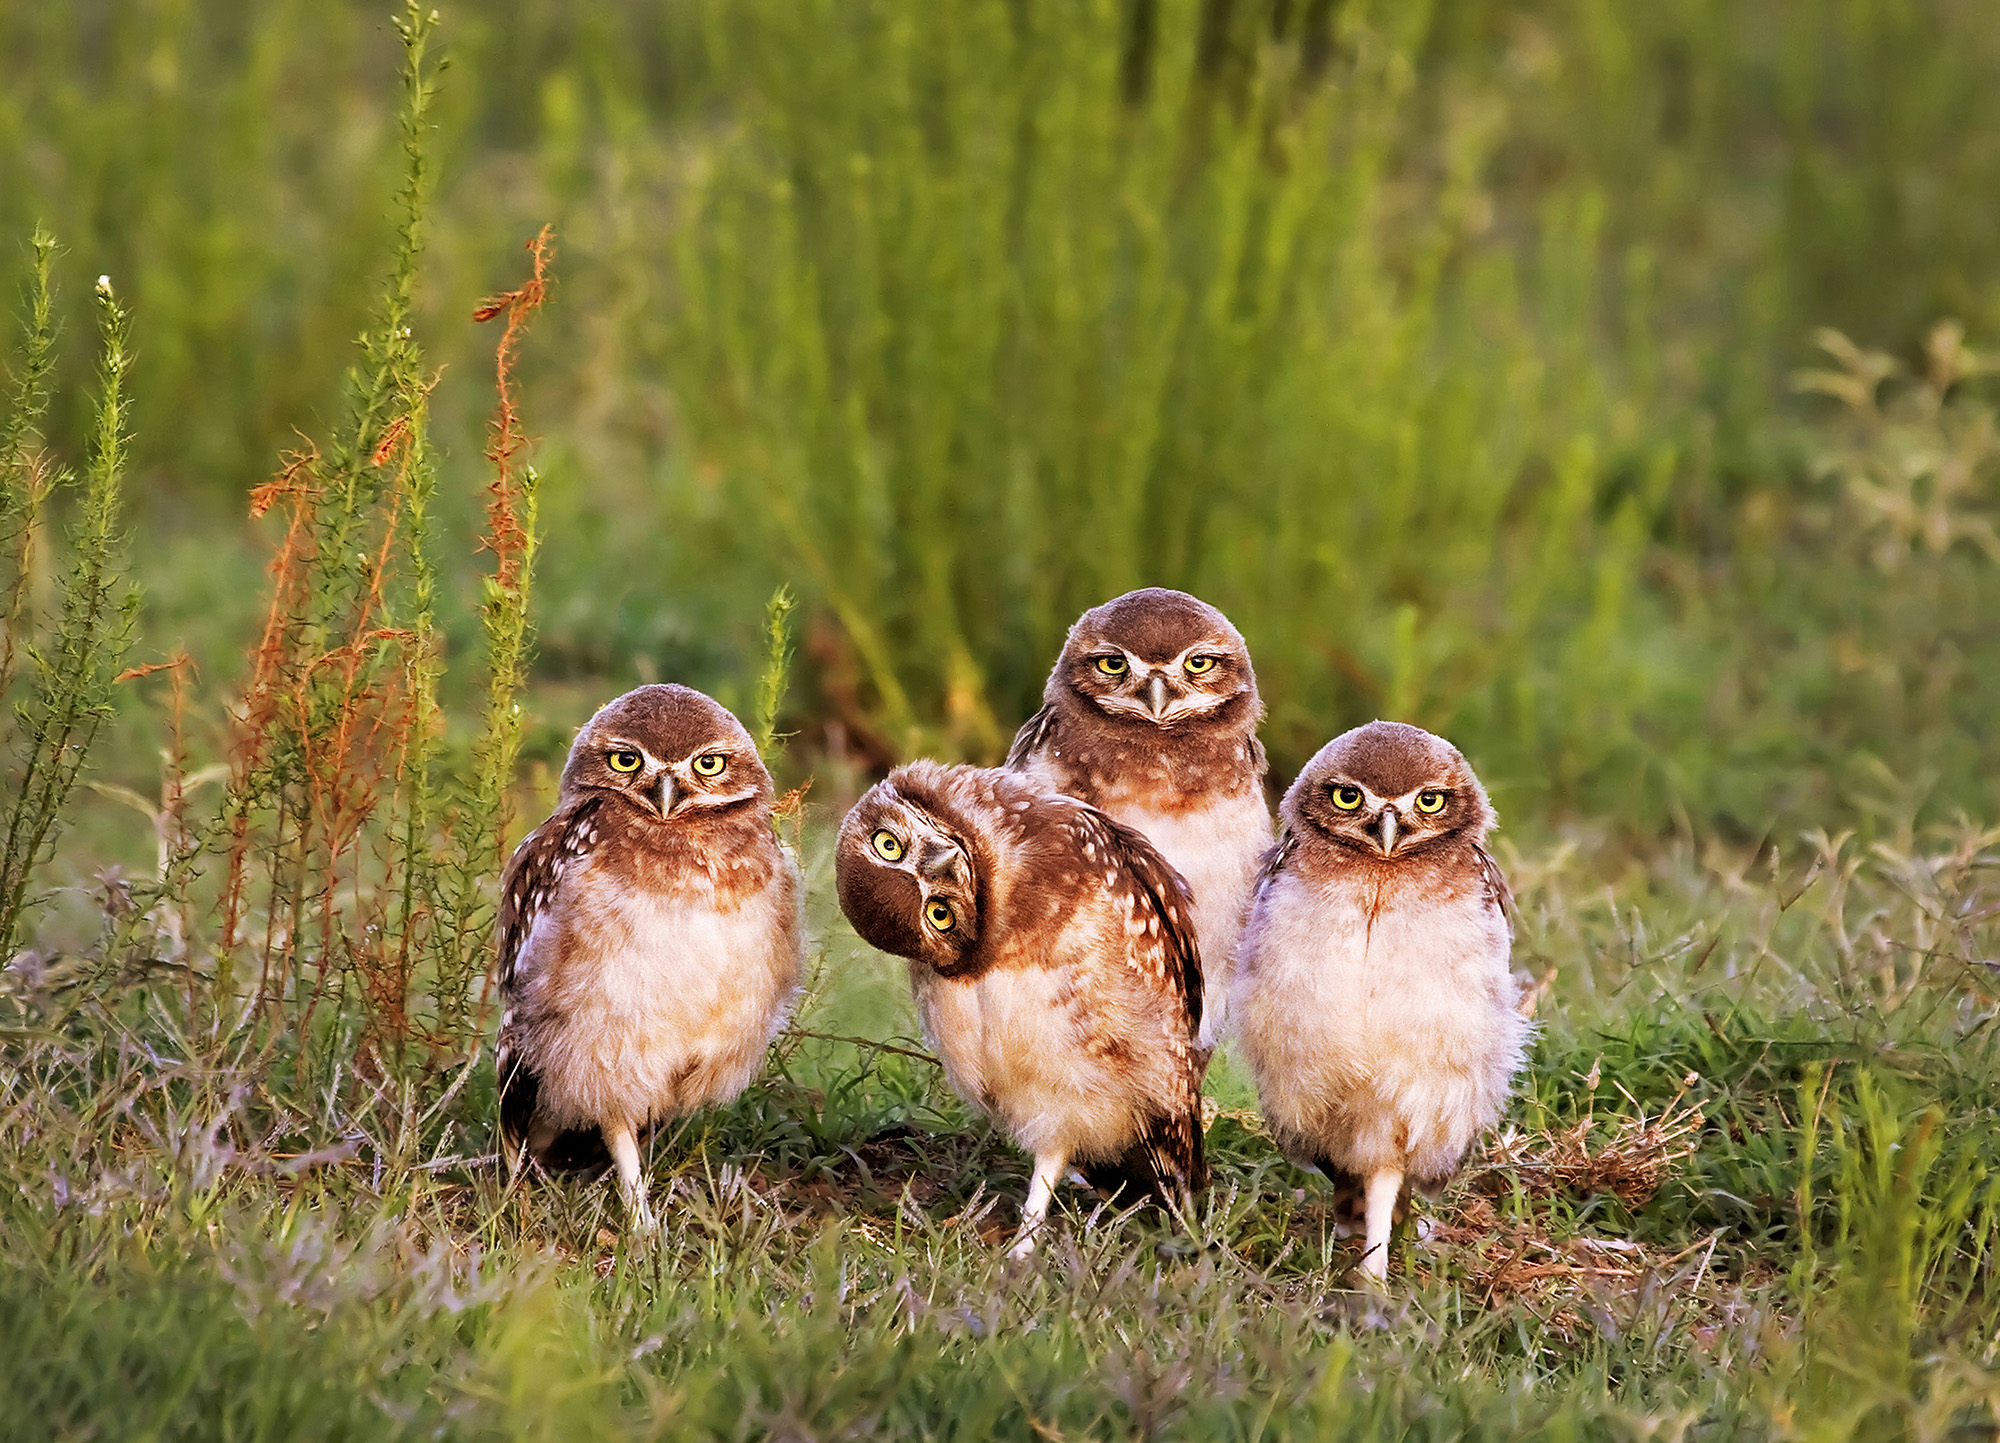 Burrowing owls near their cave in Santa Rosa, La Pampa, Argentina. Photo by Mario Gustavo Fiorucci/The Comedy Wildlife Photography Awards.